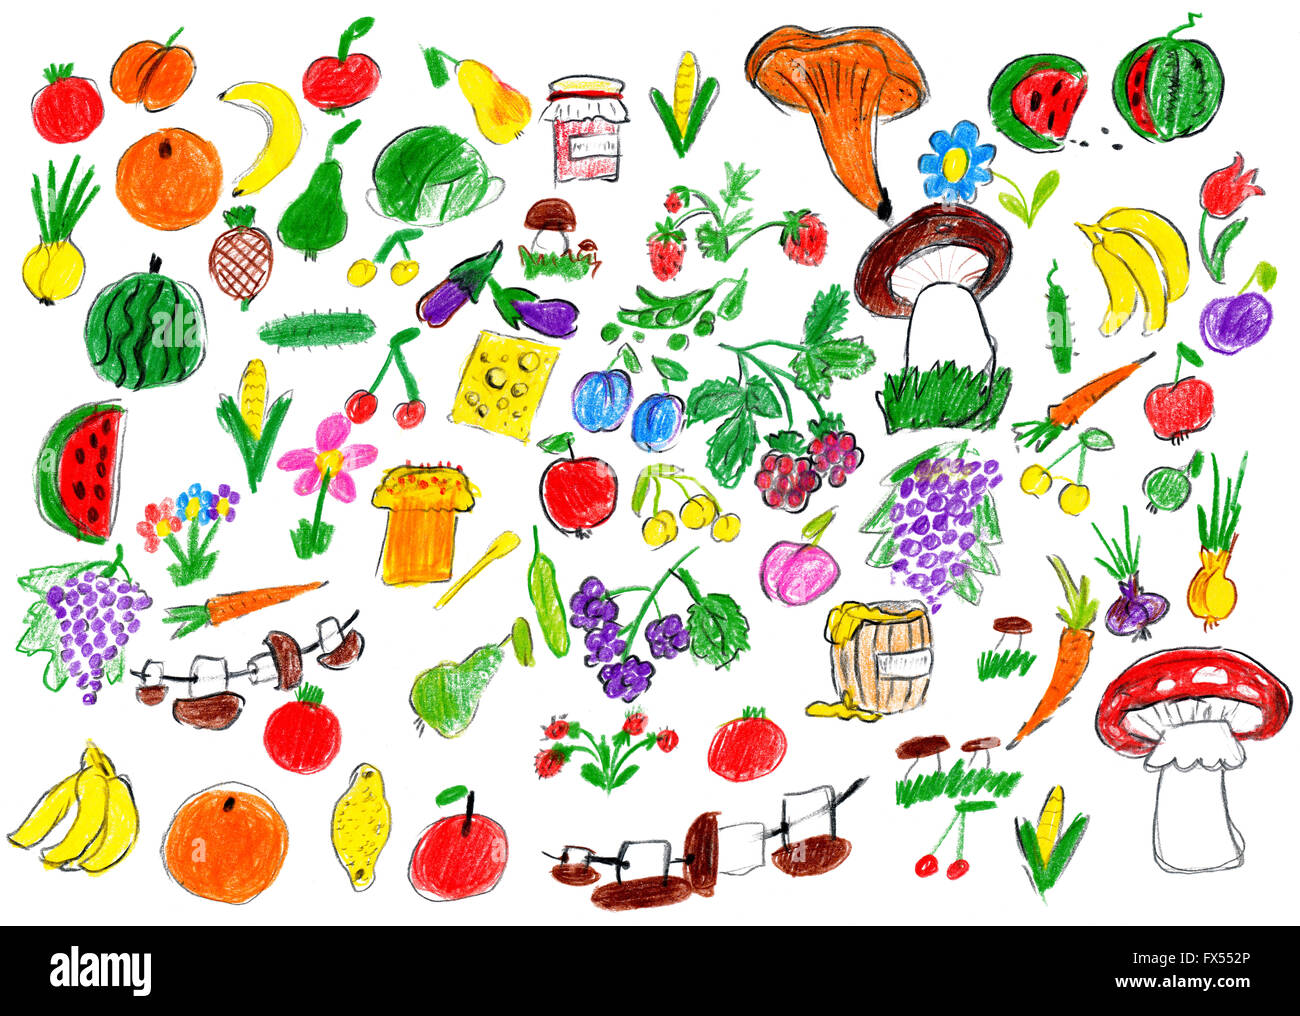 cartoon food collection, fruit and vegetables, child drawing object set on paper, hand drawn art picture - Stock Image